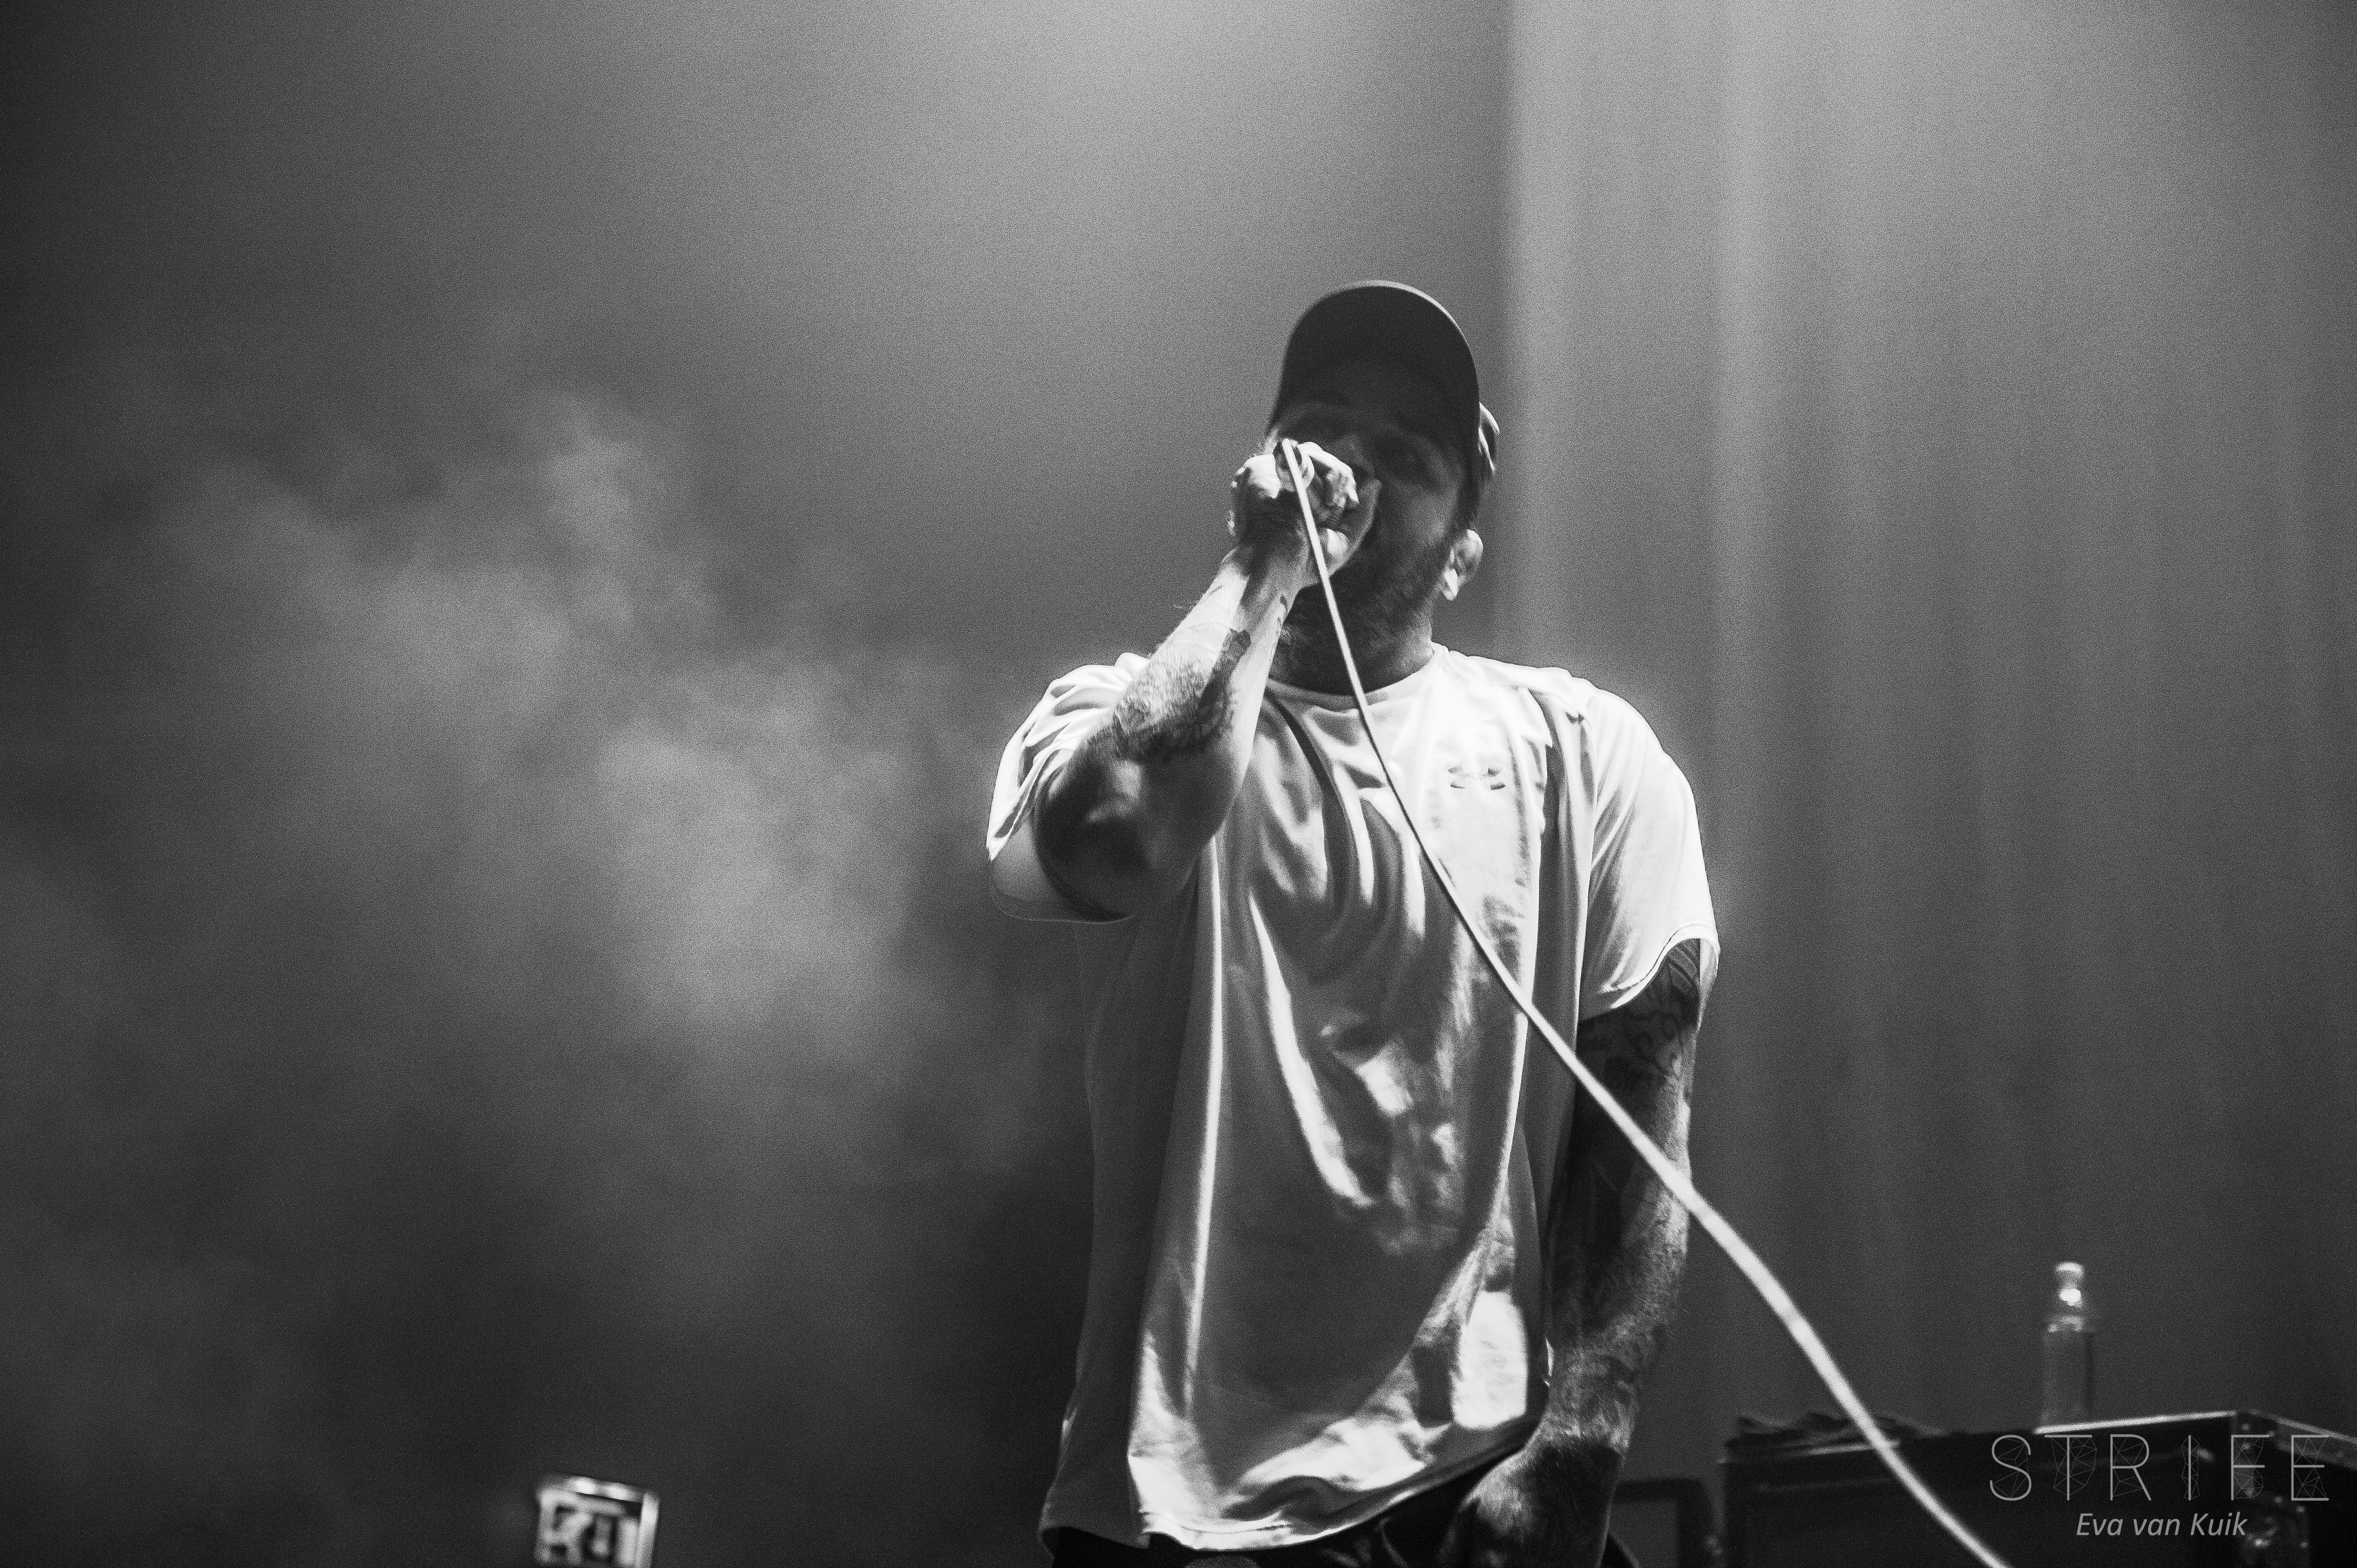 PHOTO REVIEW: Emmure & Fit For A King Turn Utrecht Upside Down